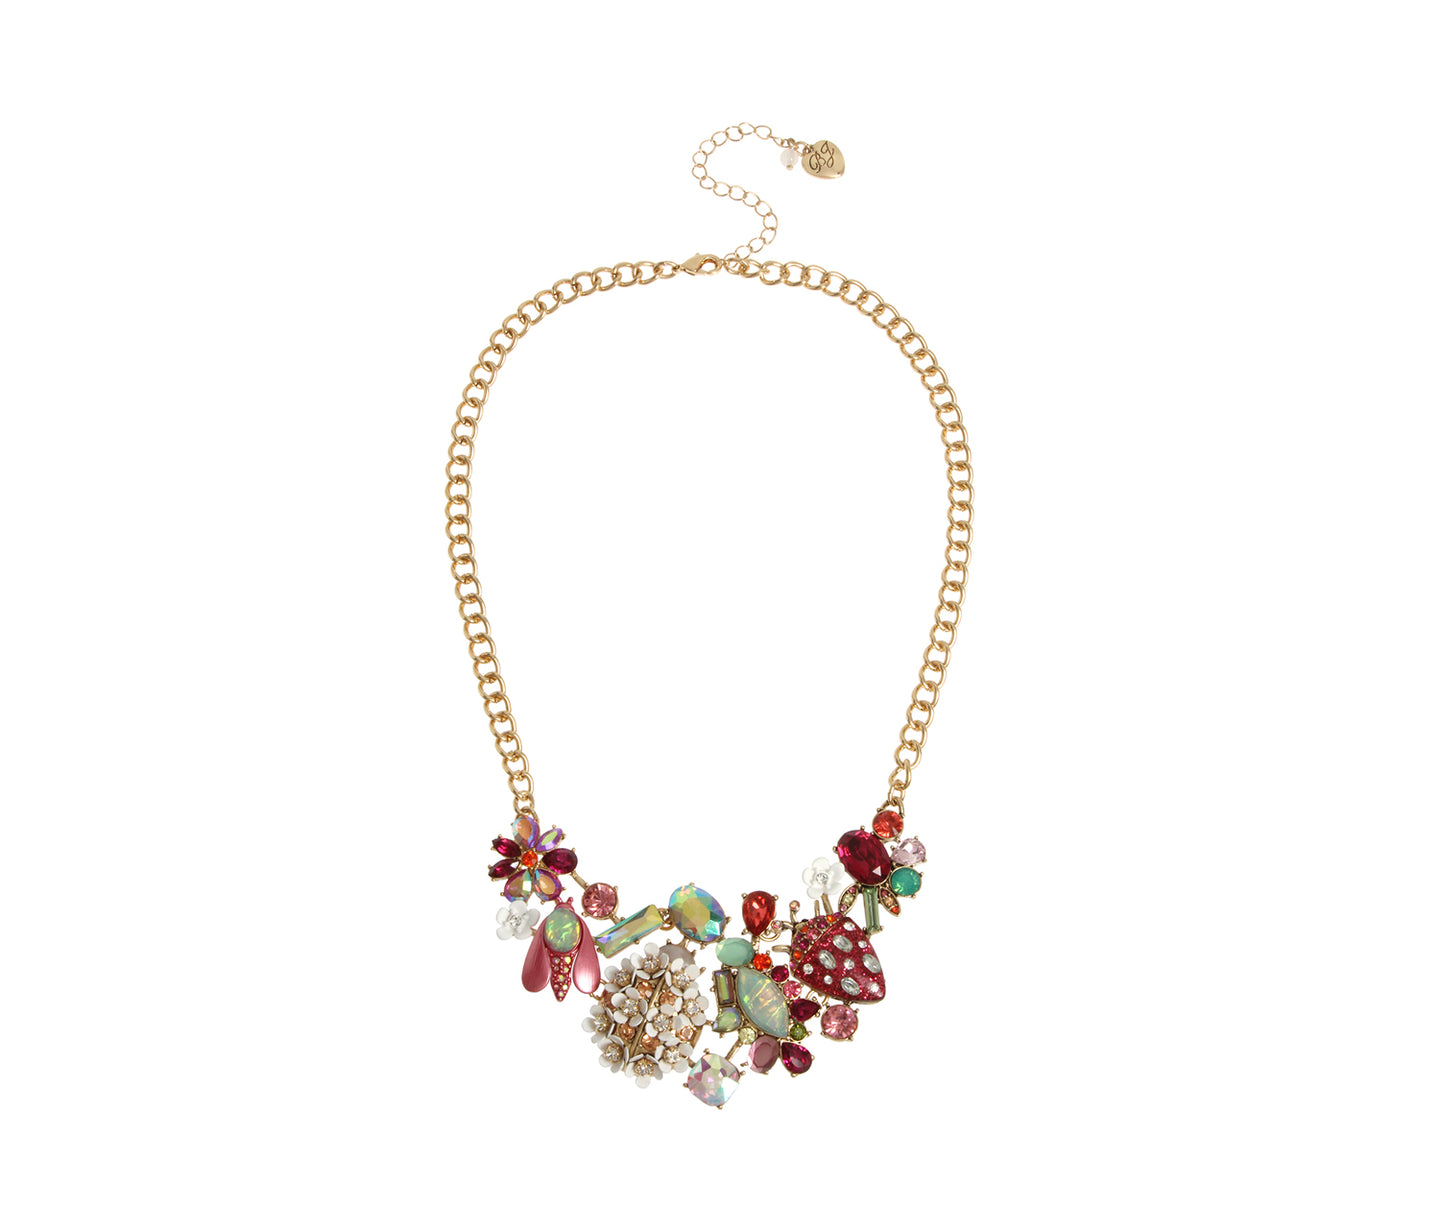 OPULENT FLORAL SMALL BIB NECKLACE MULTI - JEWELRY - Betsey Johnson